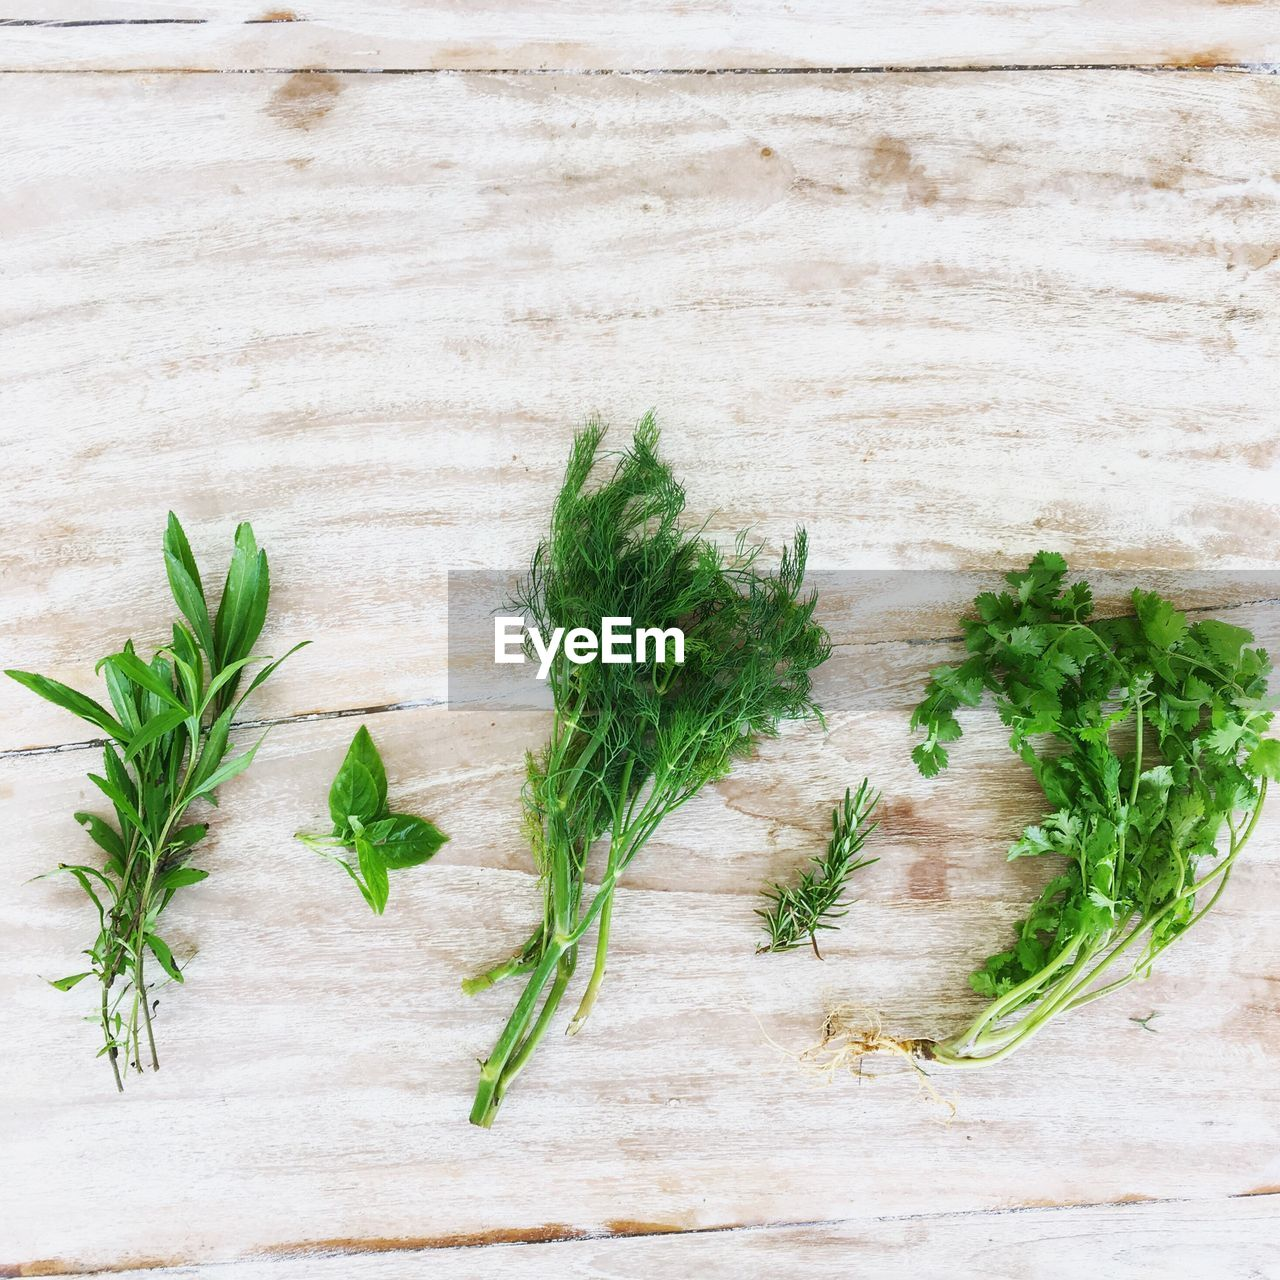 herb, green color, food and drink, freshness, food, healthy eating, wellbeing, table, leaf, plant part, no people, indoors, wood - material, vegetable, still life, plant, high angle view, close-up, nature, parsley, mint leaf - culinary, leaves